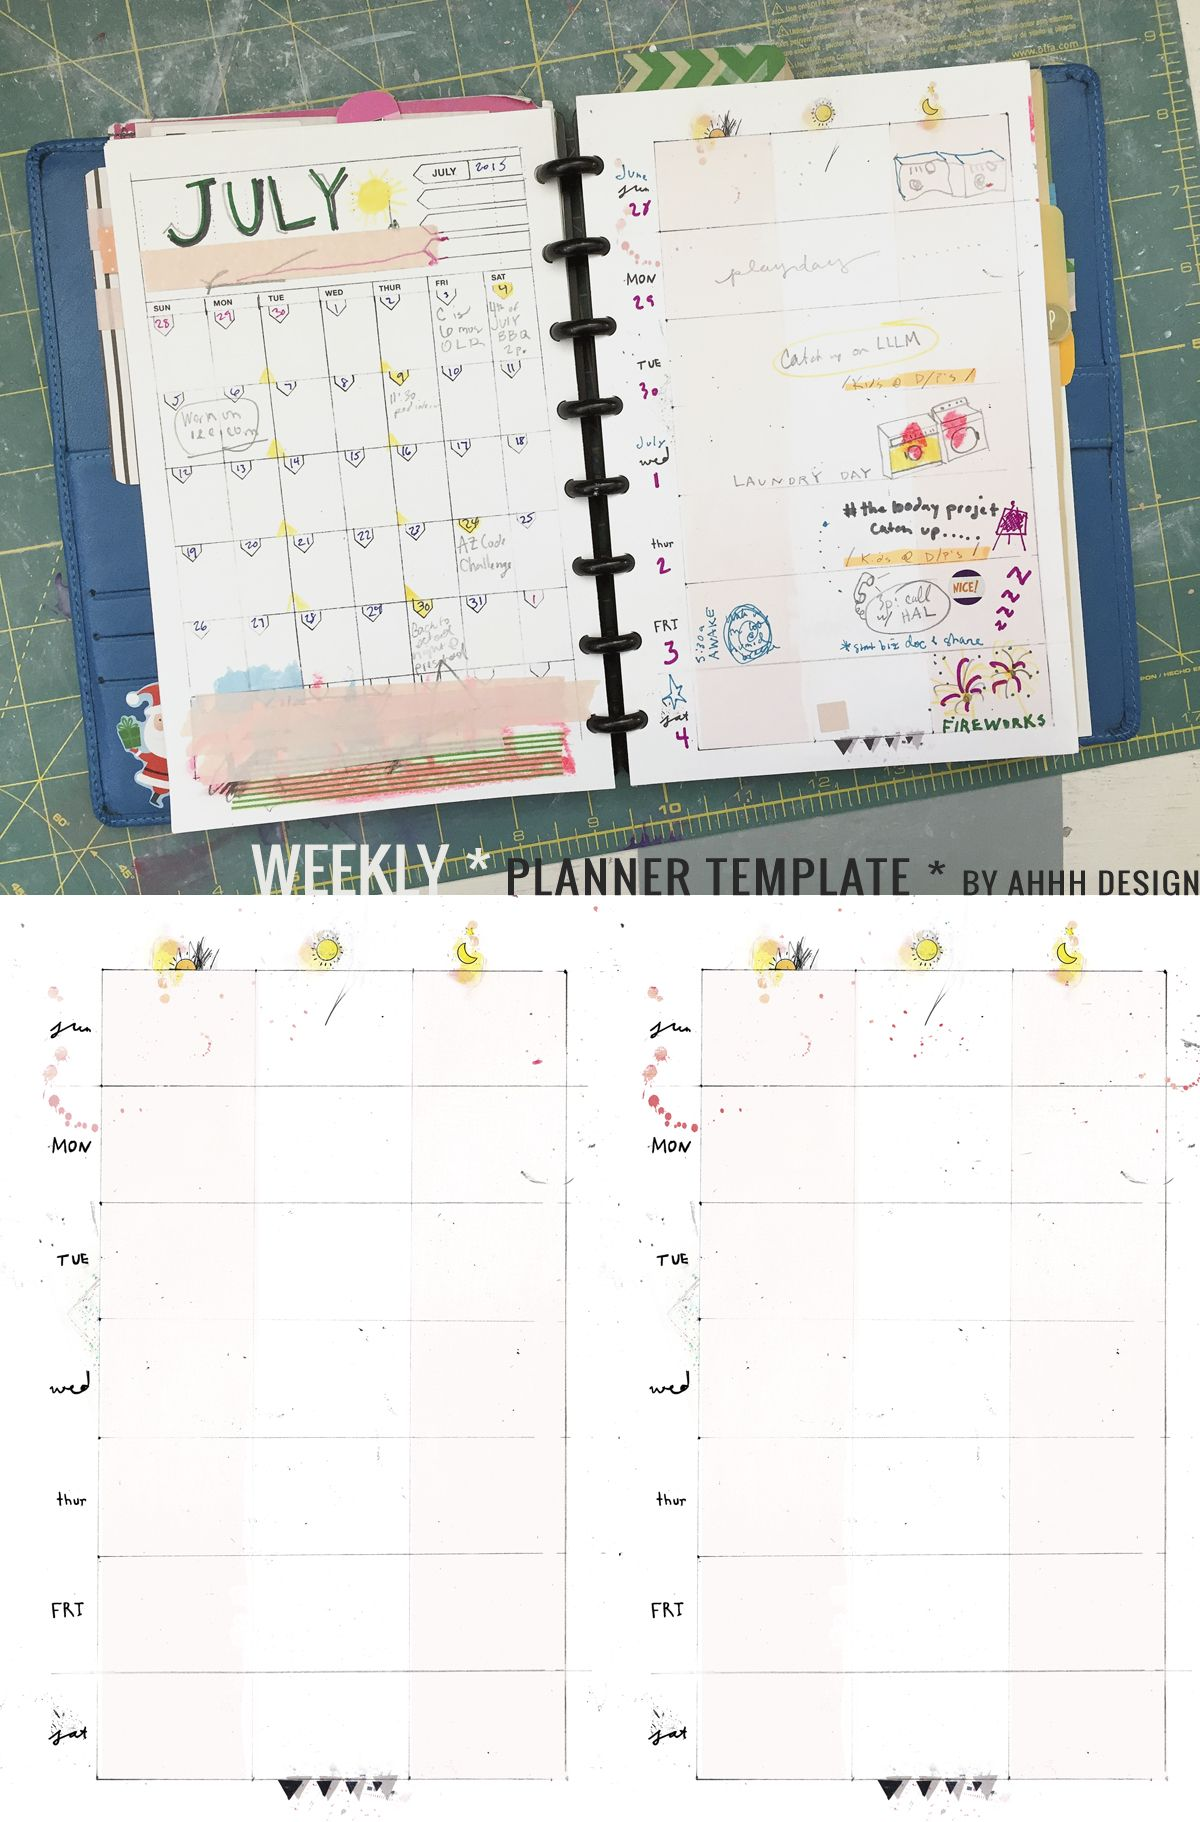 a messy week | More Planners, Planner template and Weekly planner ...